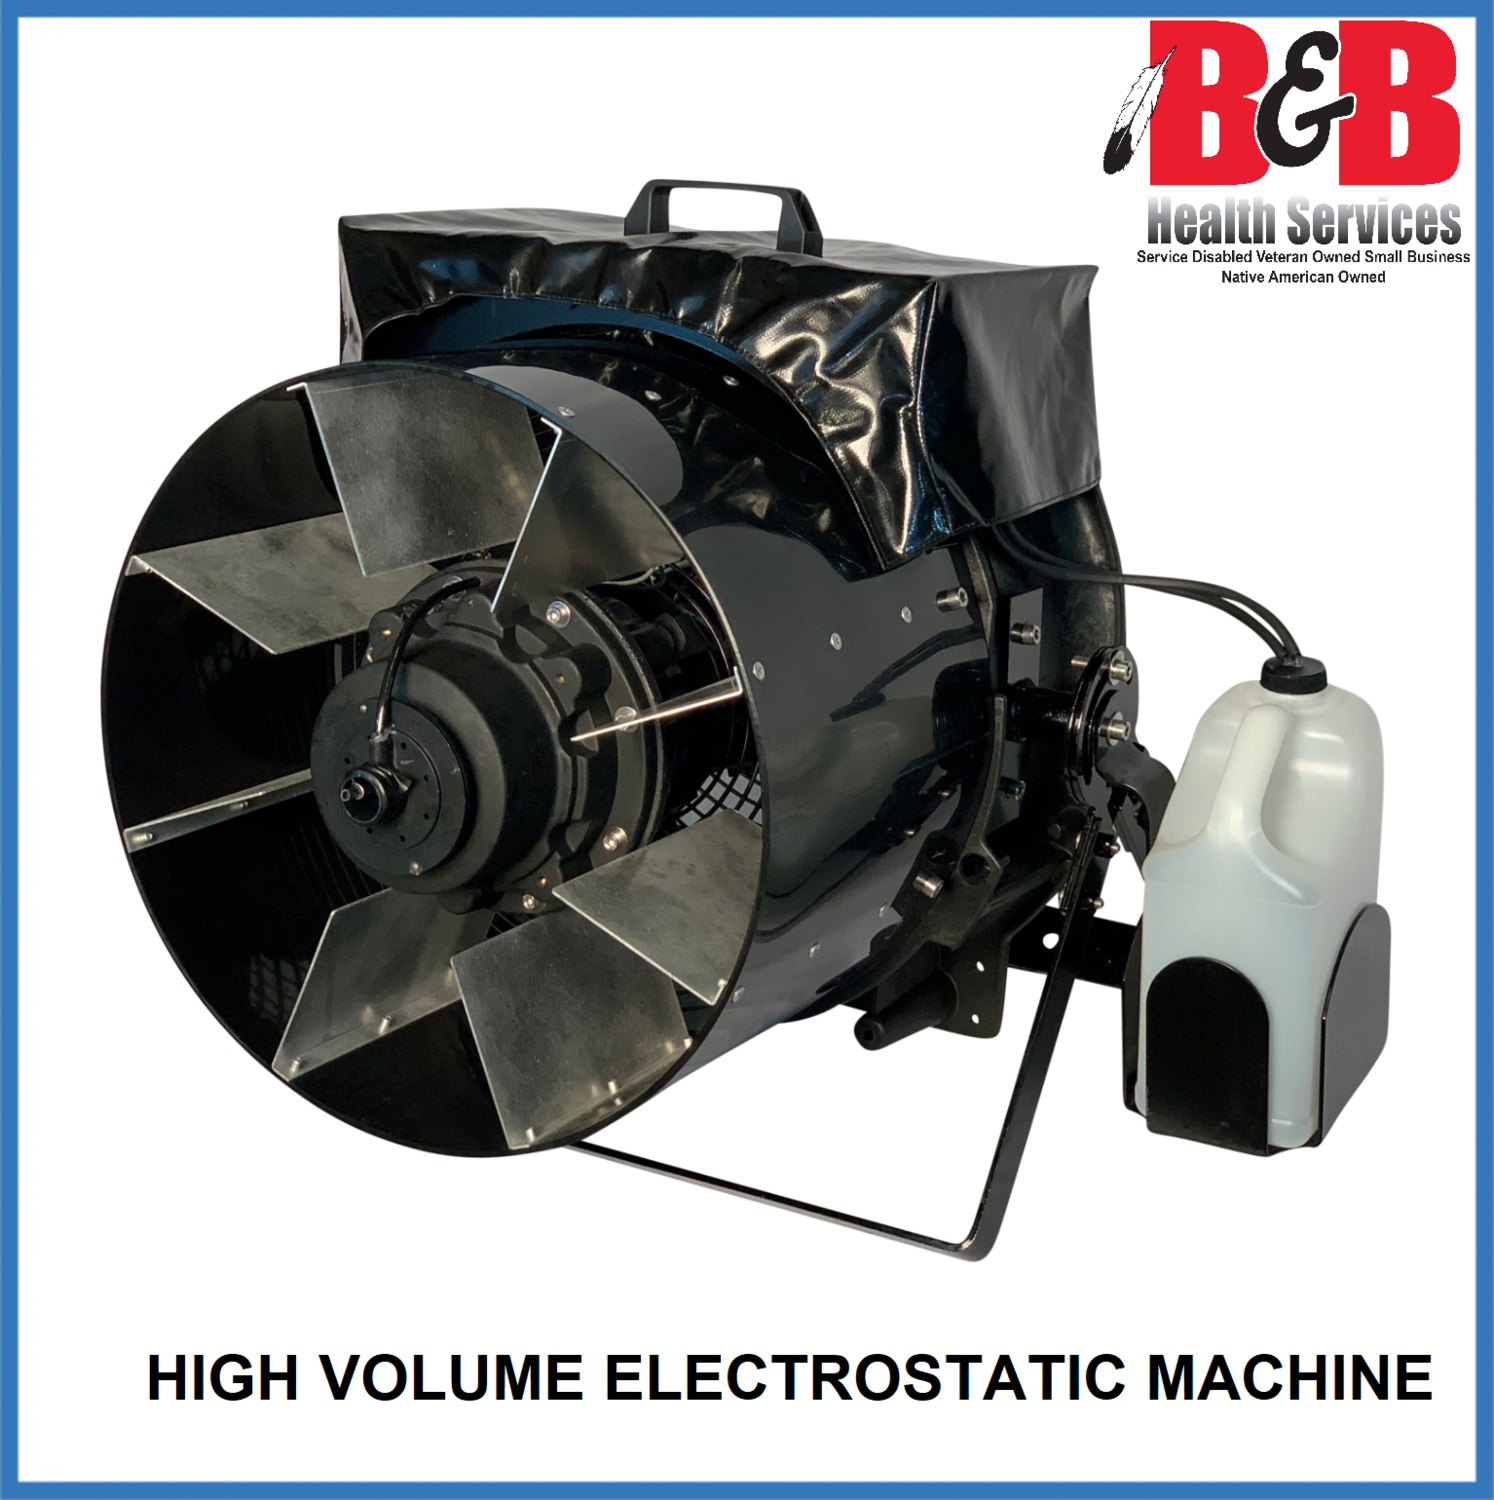 High Volume Electrostatic Machine